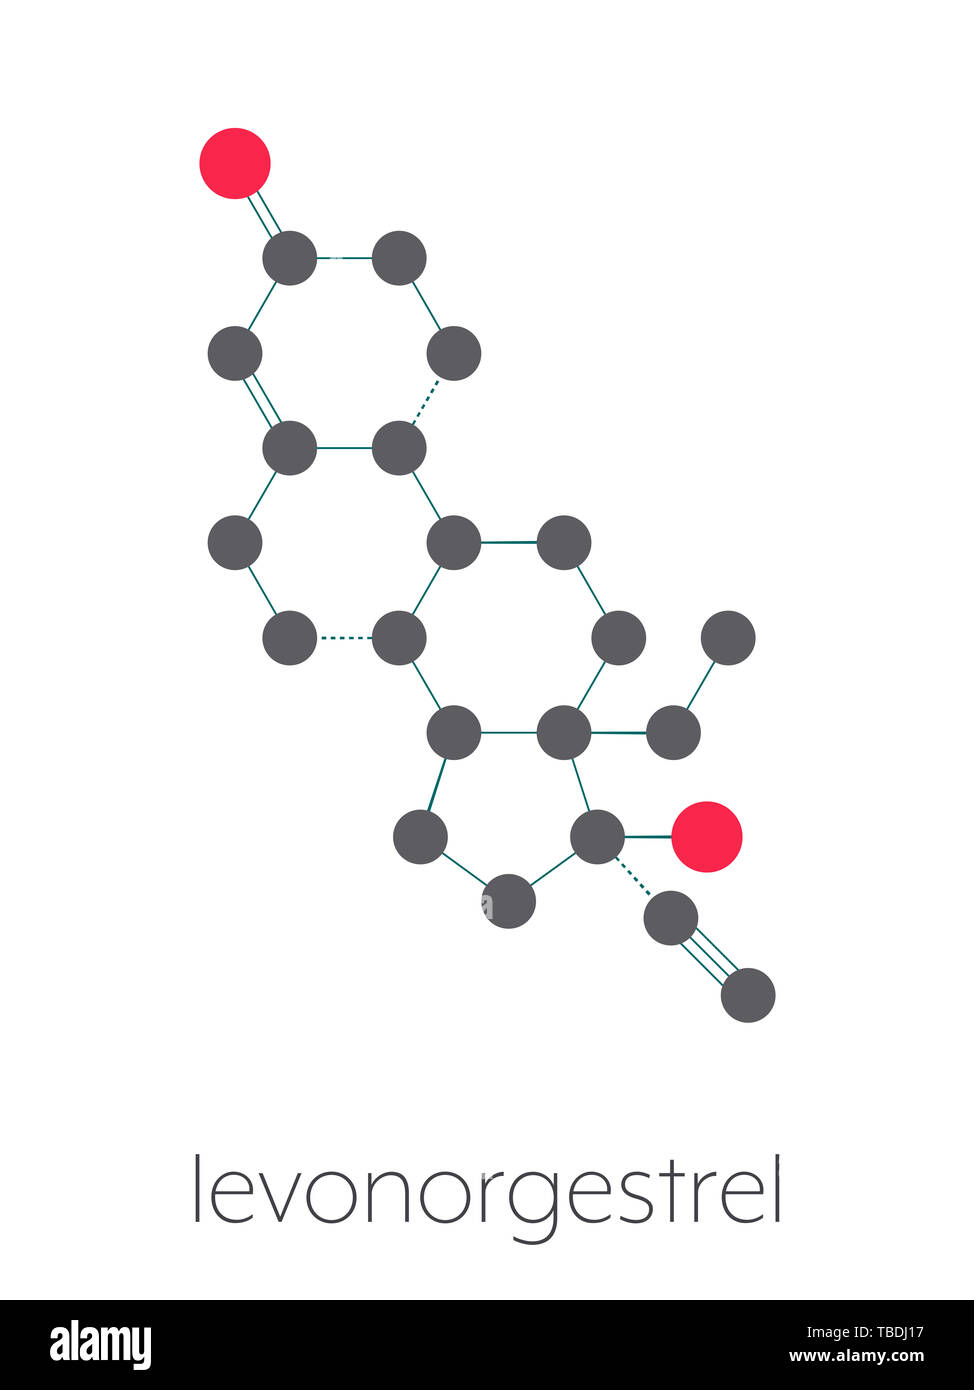 Levonorgestrel contraceptive pill drug molecule. Stylized skeletal formula (chemical structure). Atoms are shown as color-coded circles connected by thin bonds, on a white background: hydrogen (hidden), carbon (grey), oxygen (red) - Stock Image